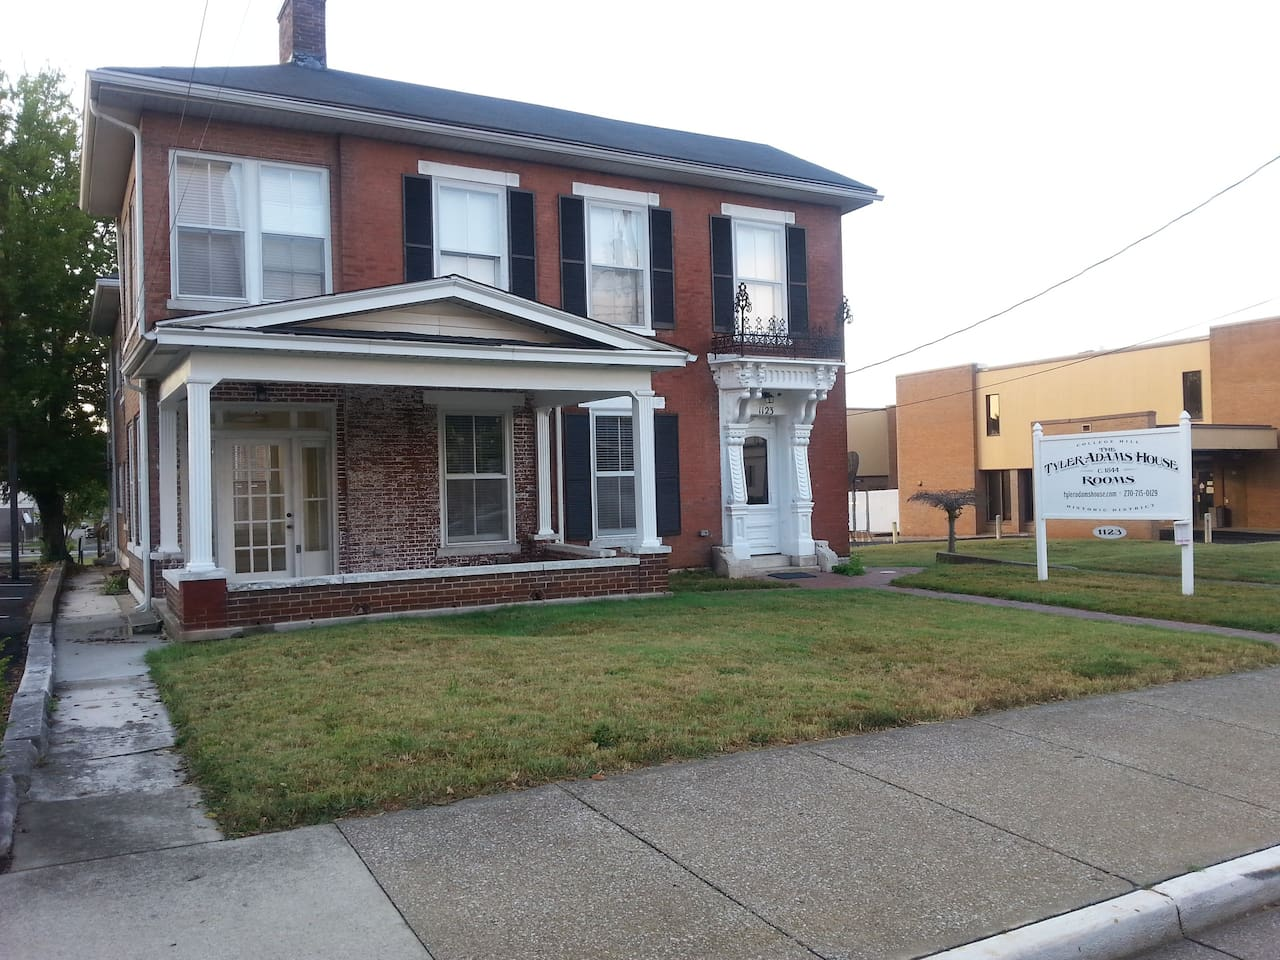 The historic Tyler Adams House awaits you in downtown Bowling Green KY. Check out this room with a shared bathroom!